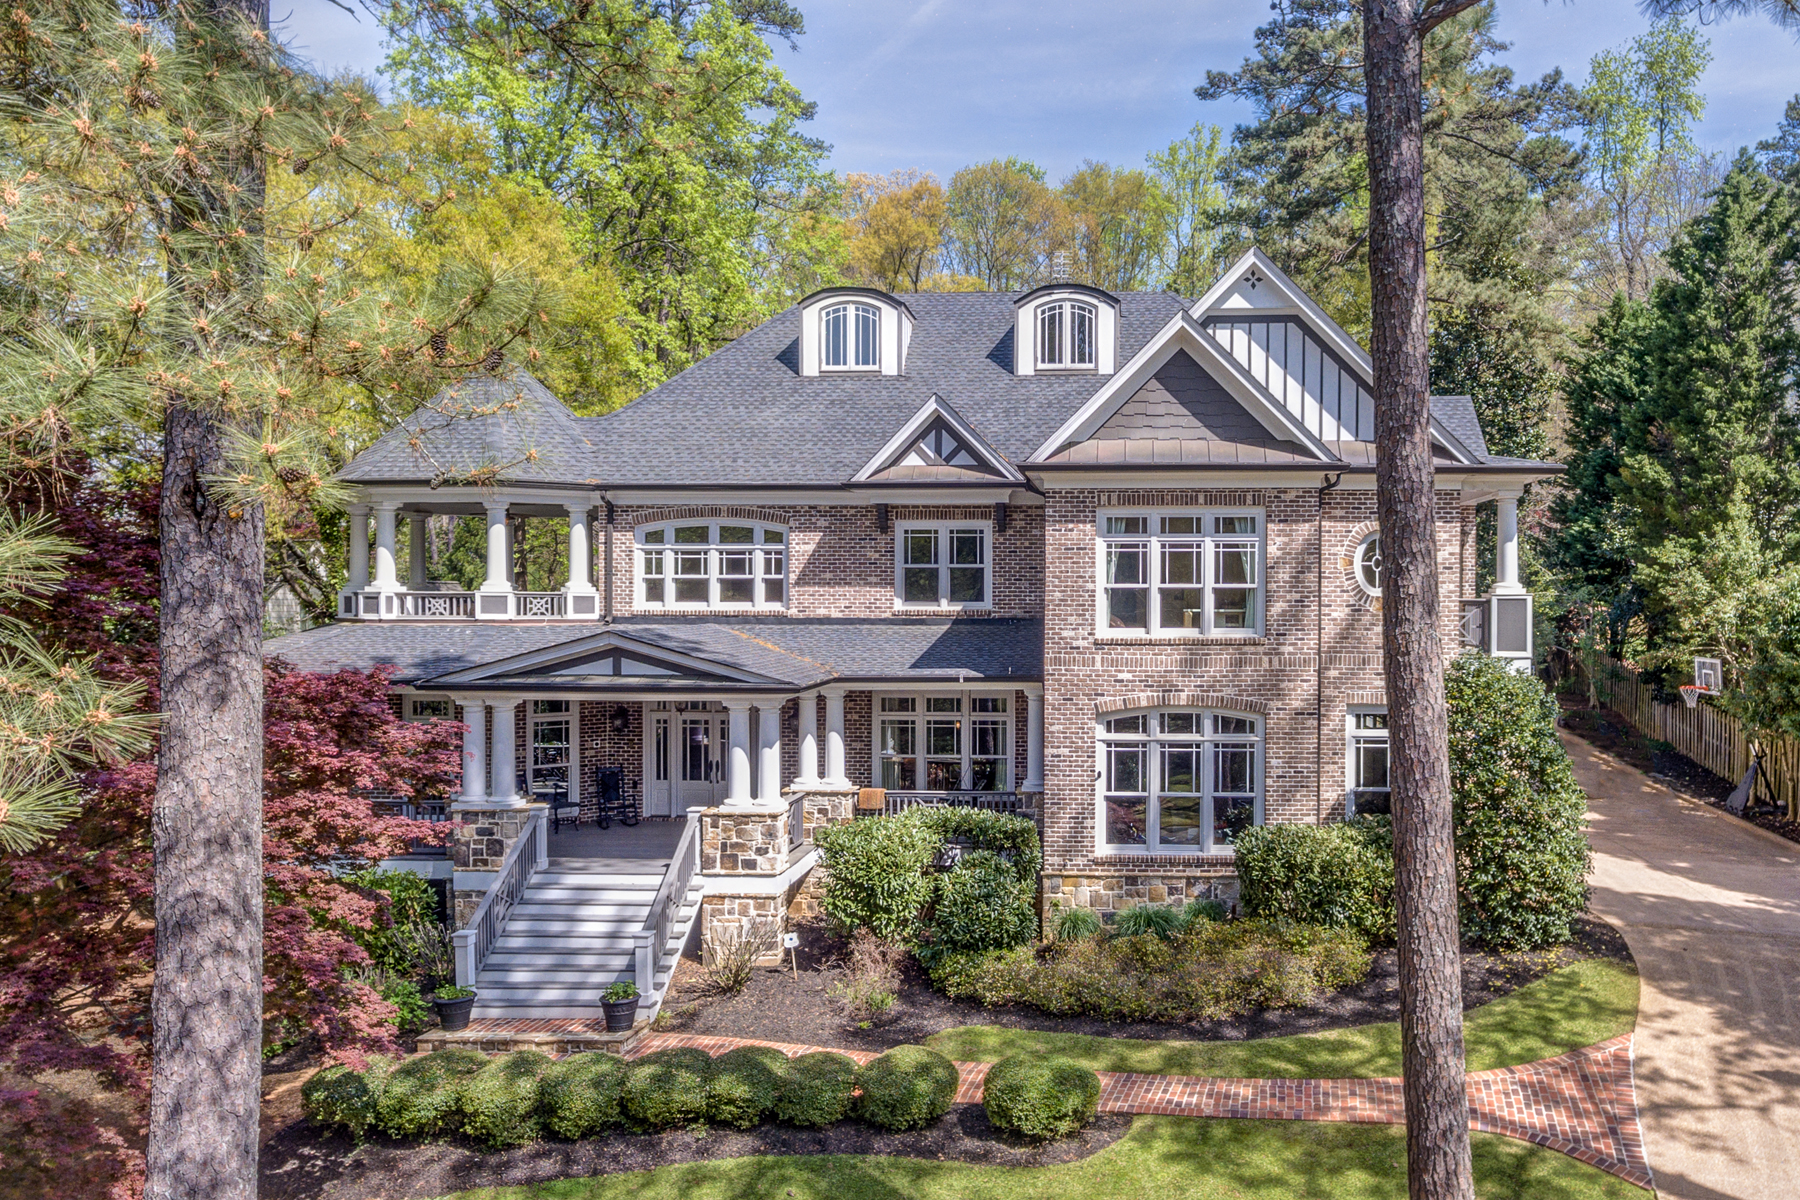 Single Family Home for Sale at Beautiful Custom Home On Secluded One Acre Lot In Brookhaven 4650 Club Valley Drive NE Atlanta, Georgia 30319 United States